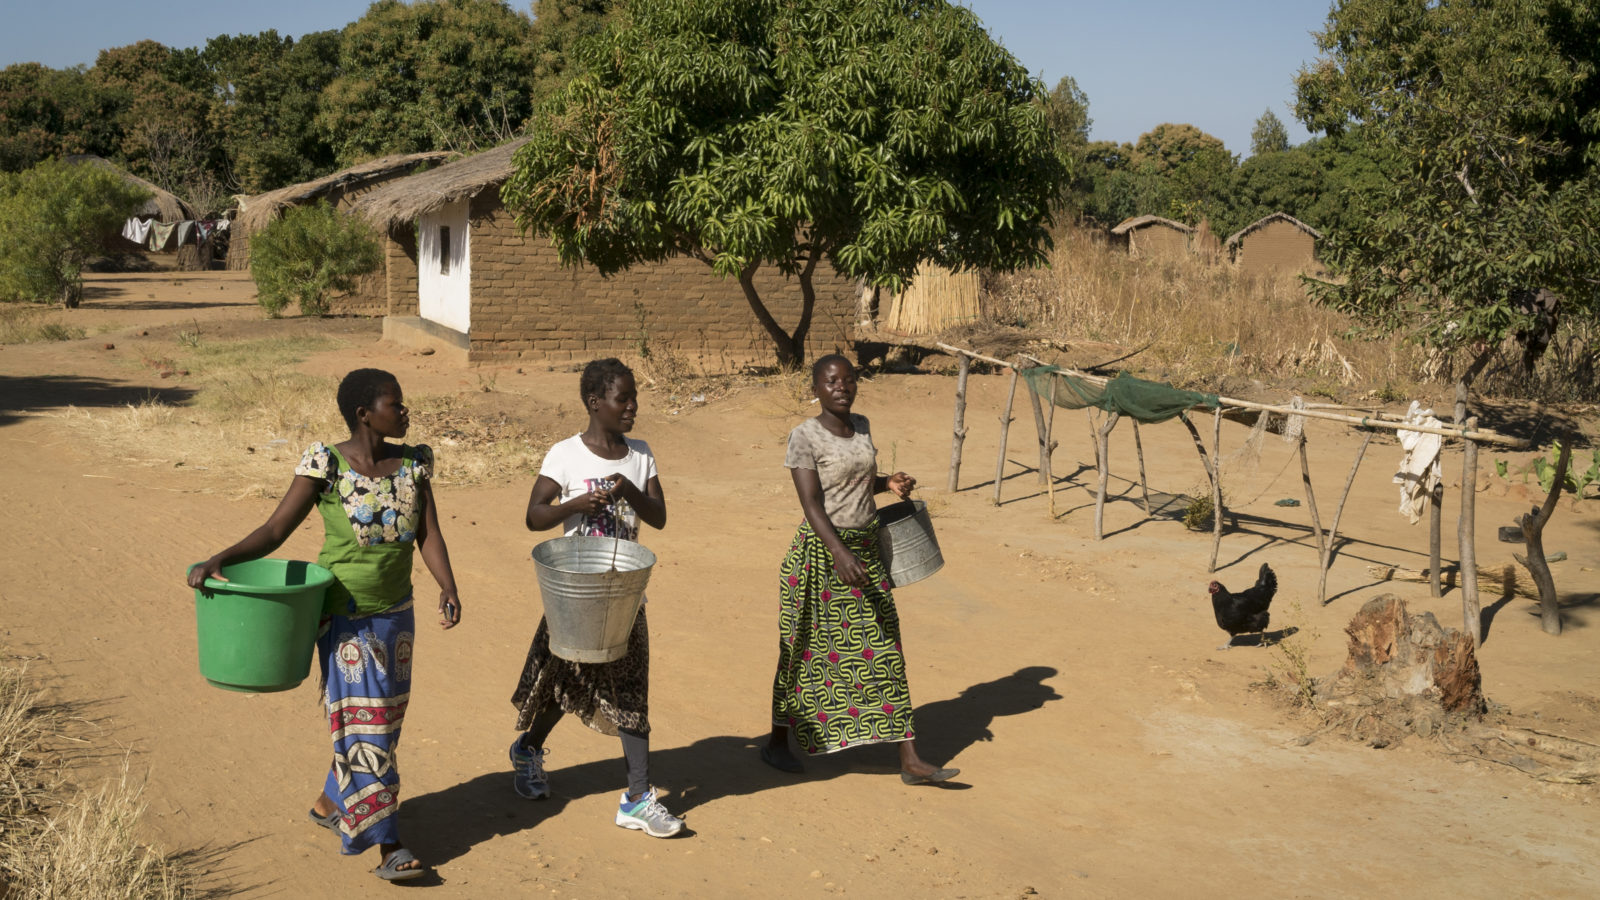 Taonere Banda, 20, (center) walks through the main street of her town to collect water with her childhood friends Zwani (right) and Tiyanjane (left) in Nkhotakota, Malawi.